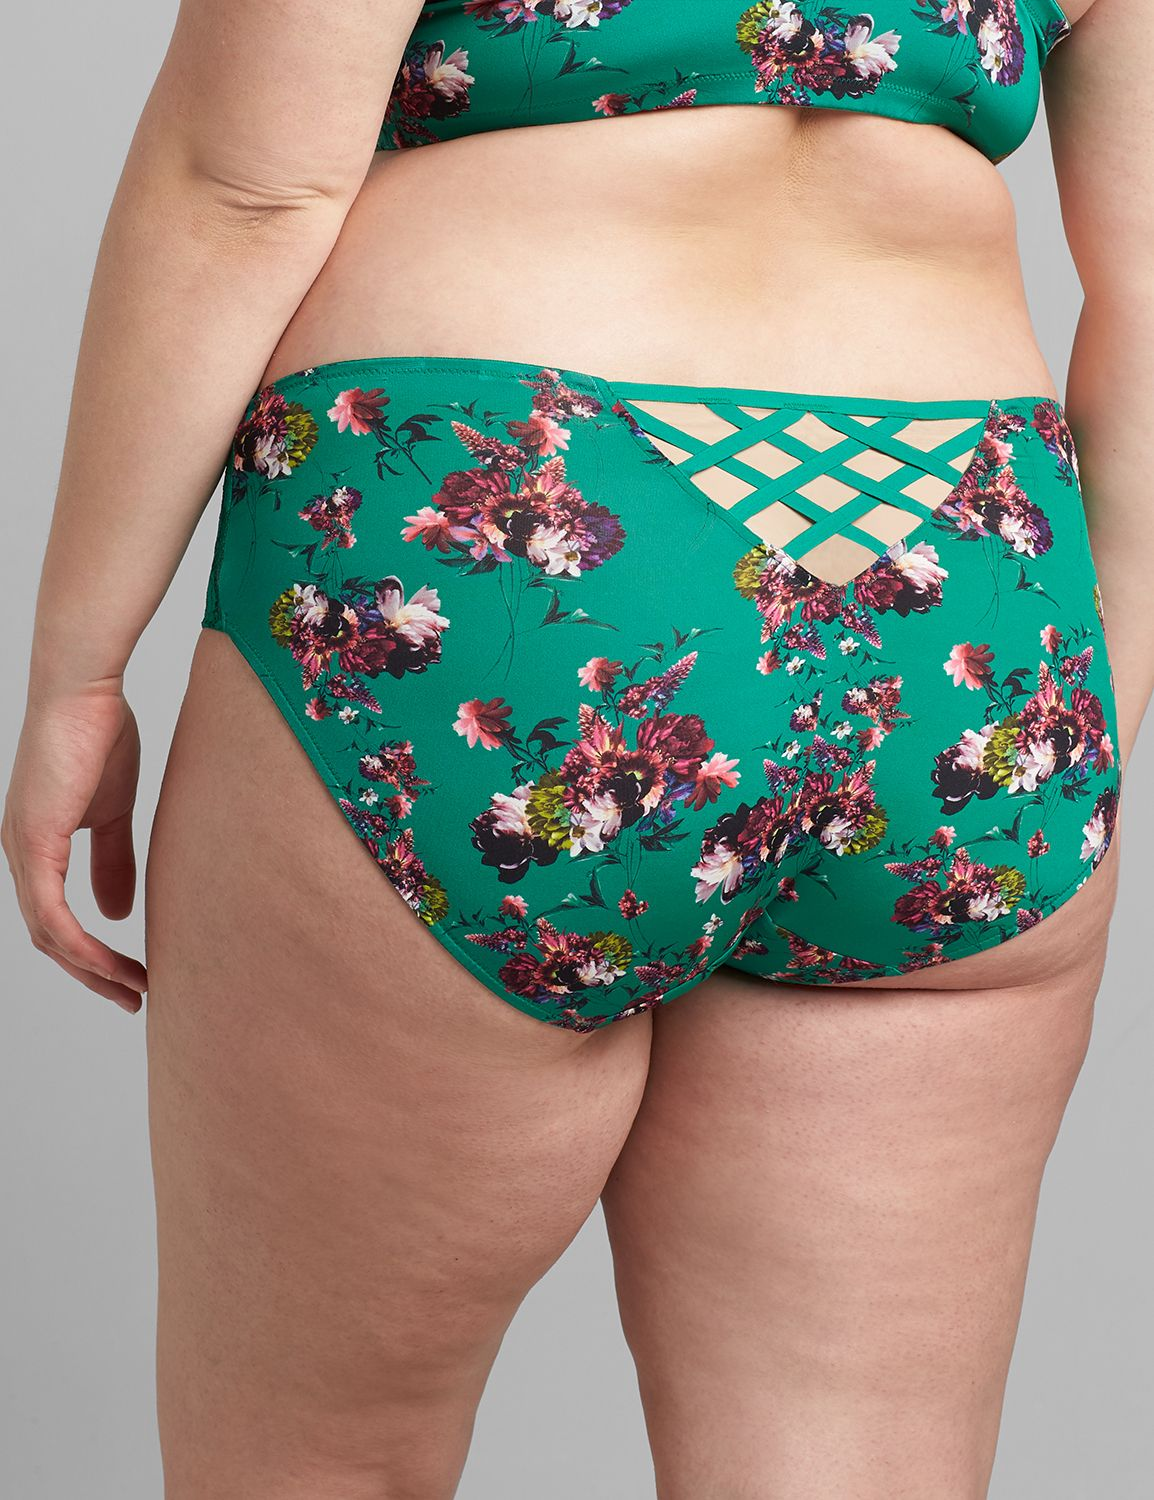 Lane Bryant Women's Printed Strappy-Back Hipster Panty 12 Colorful Blooms